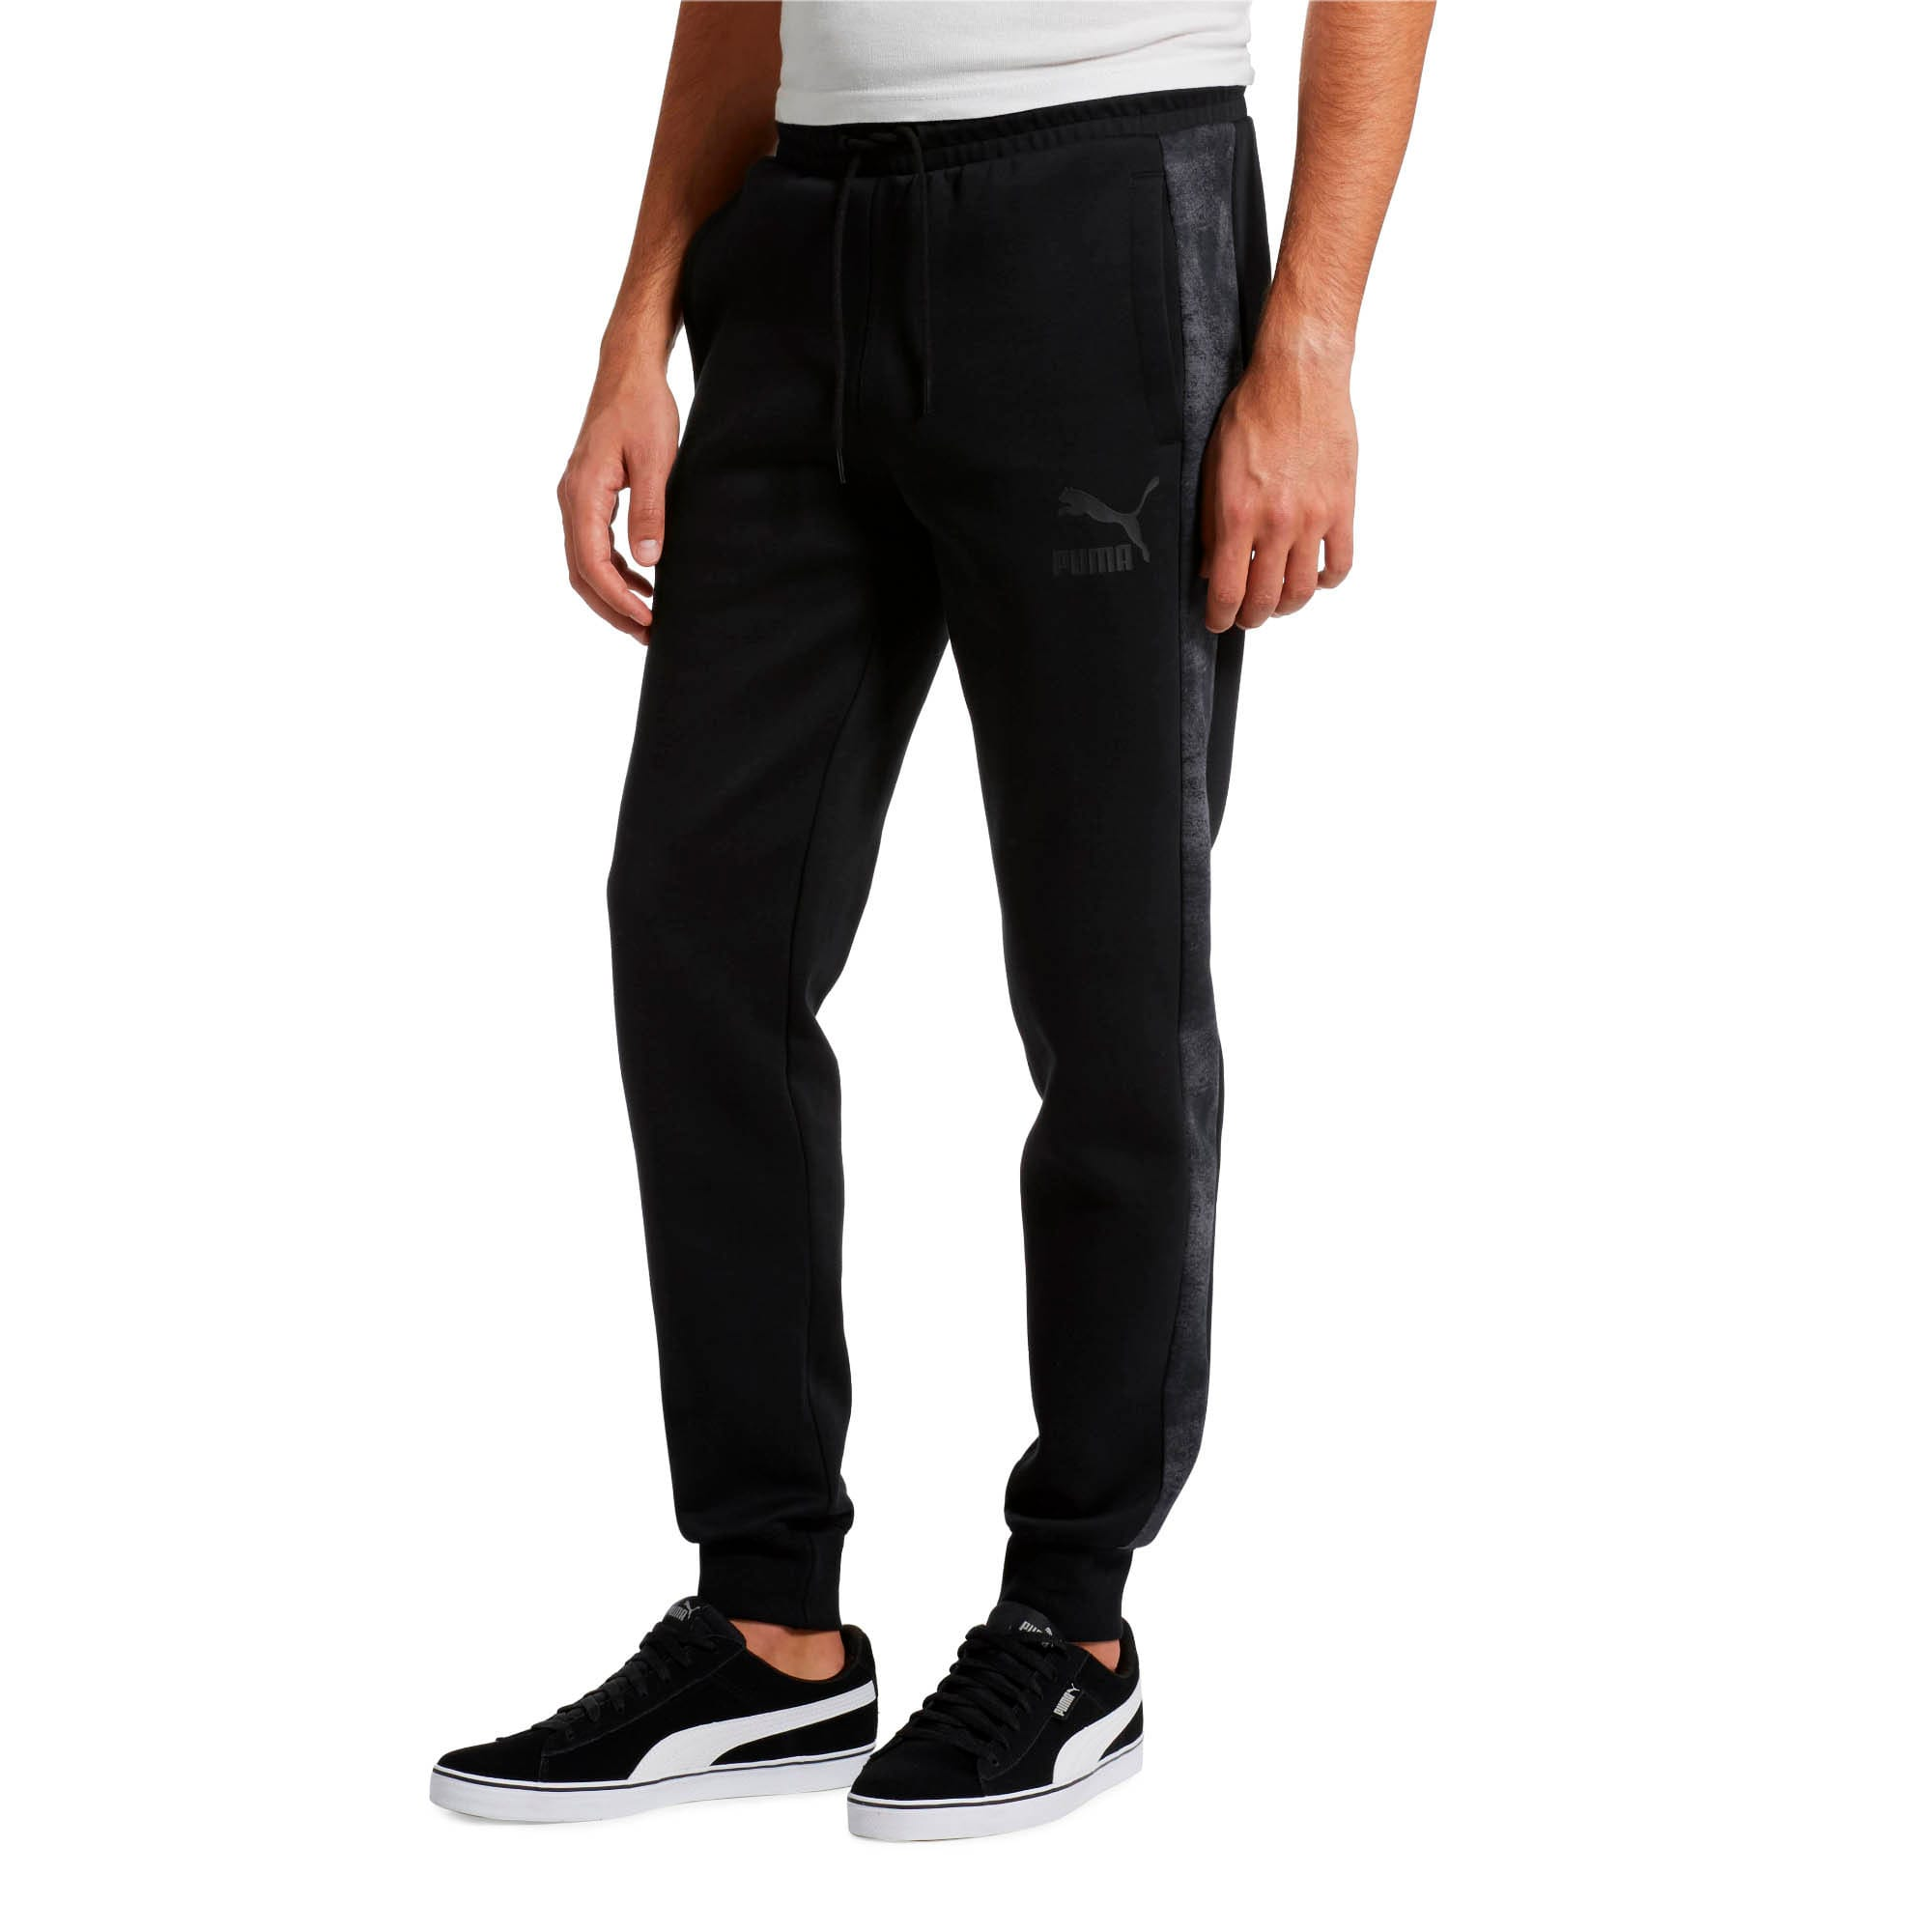 Thumbnail 2 of Classics All-Over Print T7 Men's Pants, Puma Black-3, medium